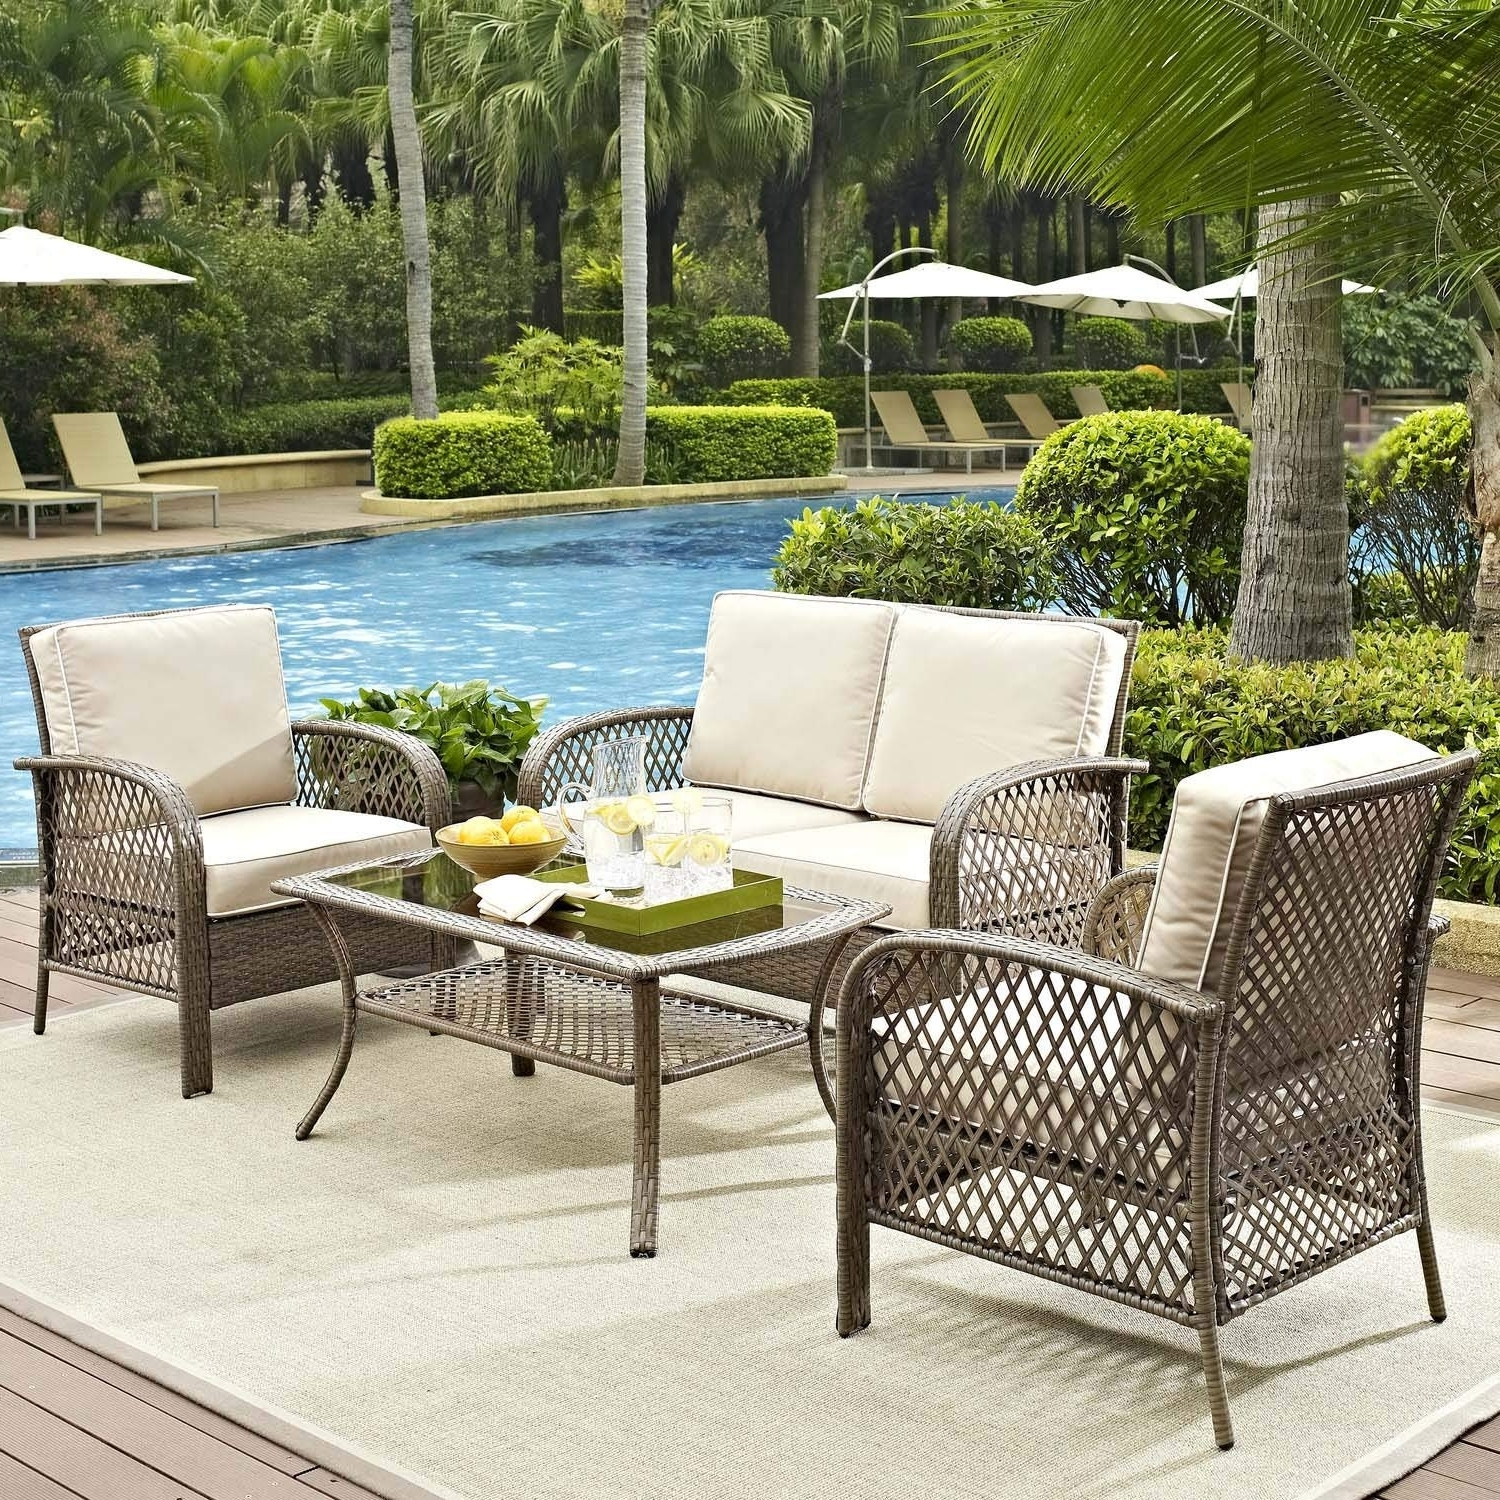 Most Recent Amazon Patio Furniture Conversation Sets Regarding Amazon: Tribeca 4 Piece Deep Seating Group Outdoor Patio (View 11 of 15)